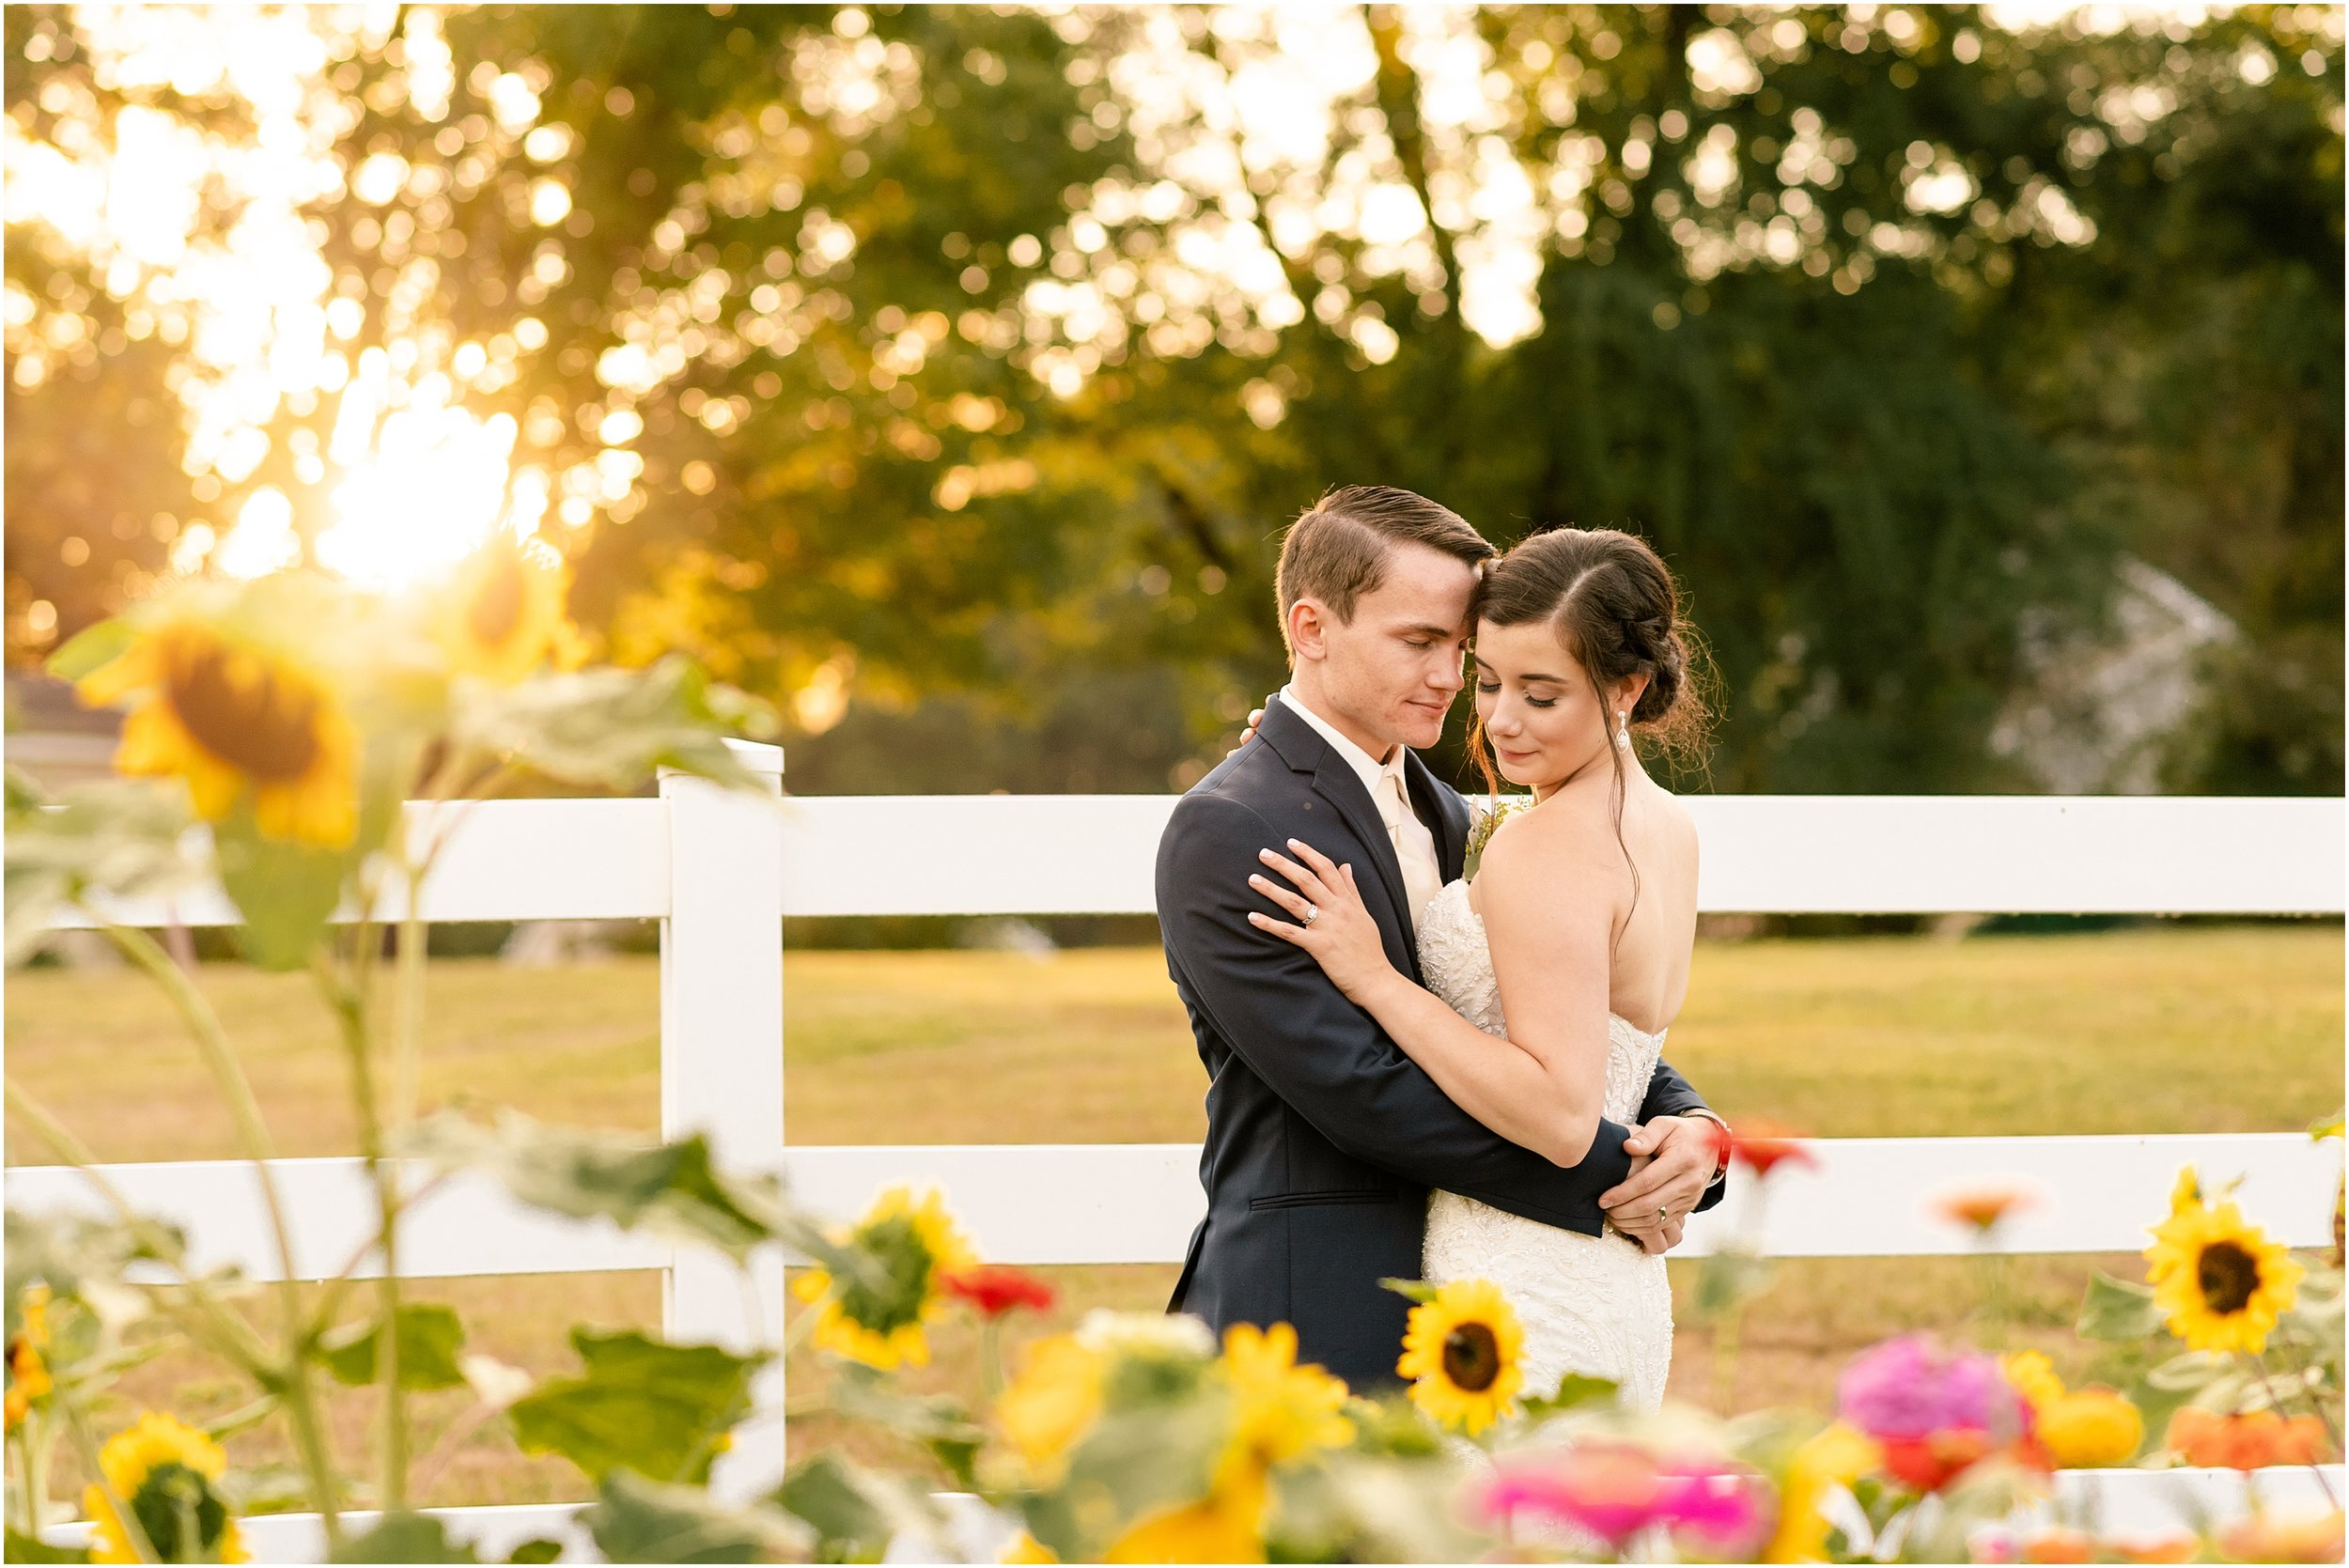 hannah leigh photography Pond View Farm Wedding White Hall MD_3685.jpg